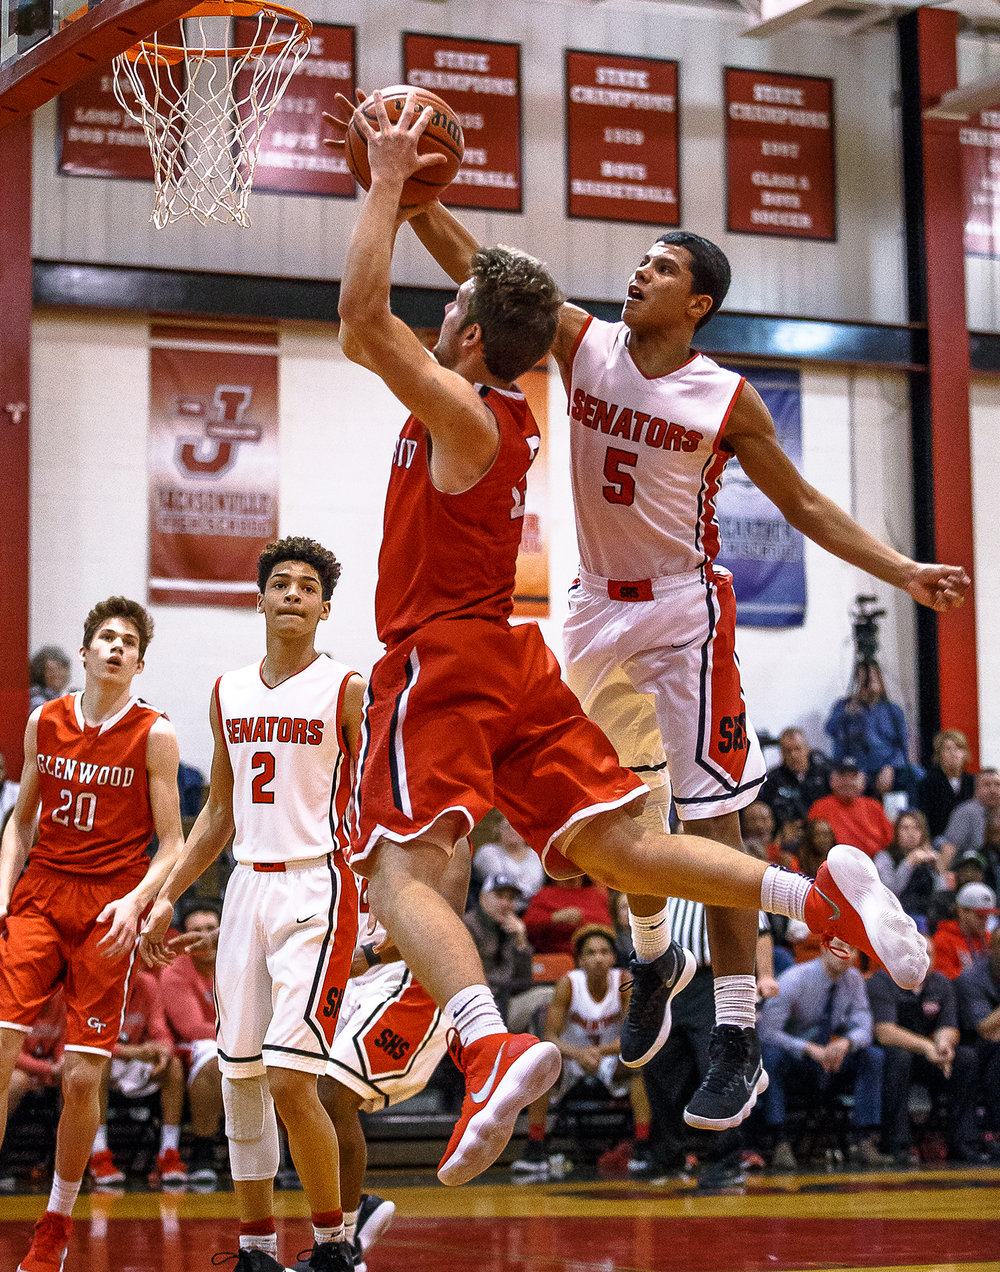 Springfield's Shane Miller (5) blocks a shot from Glenwood's Adam Holm (2) in the first half at Springfield High School, Friday, Feb. 16, 2018, in Springfield, Ill. [Justin L. Fowler/The State Journal-Register]